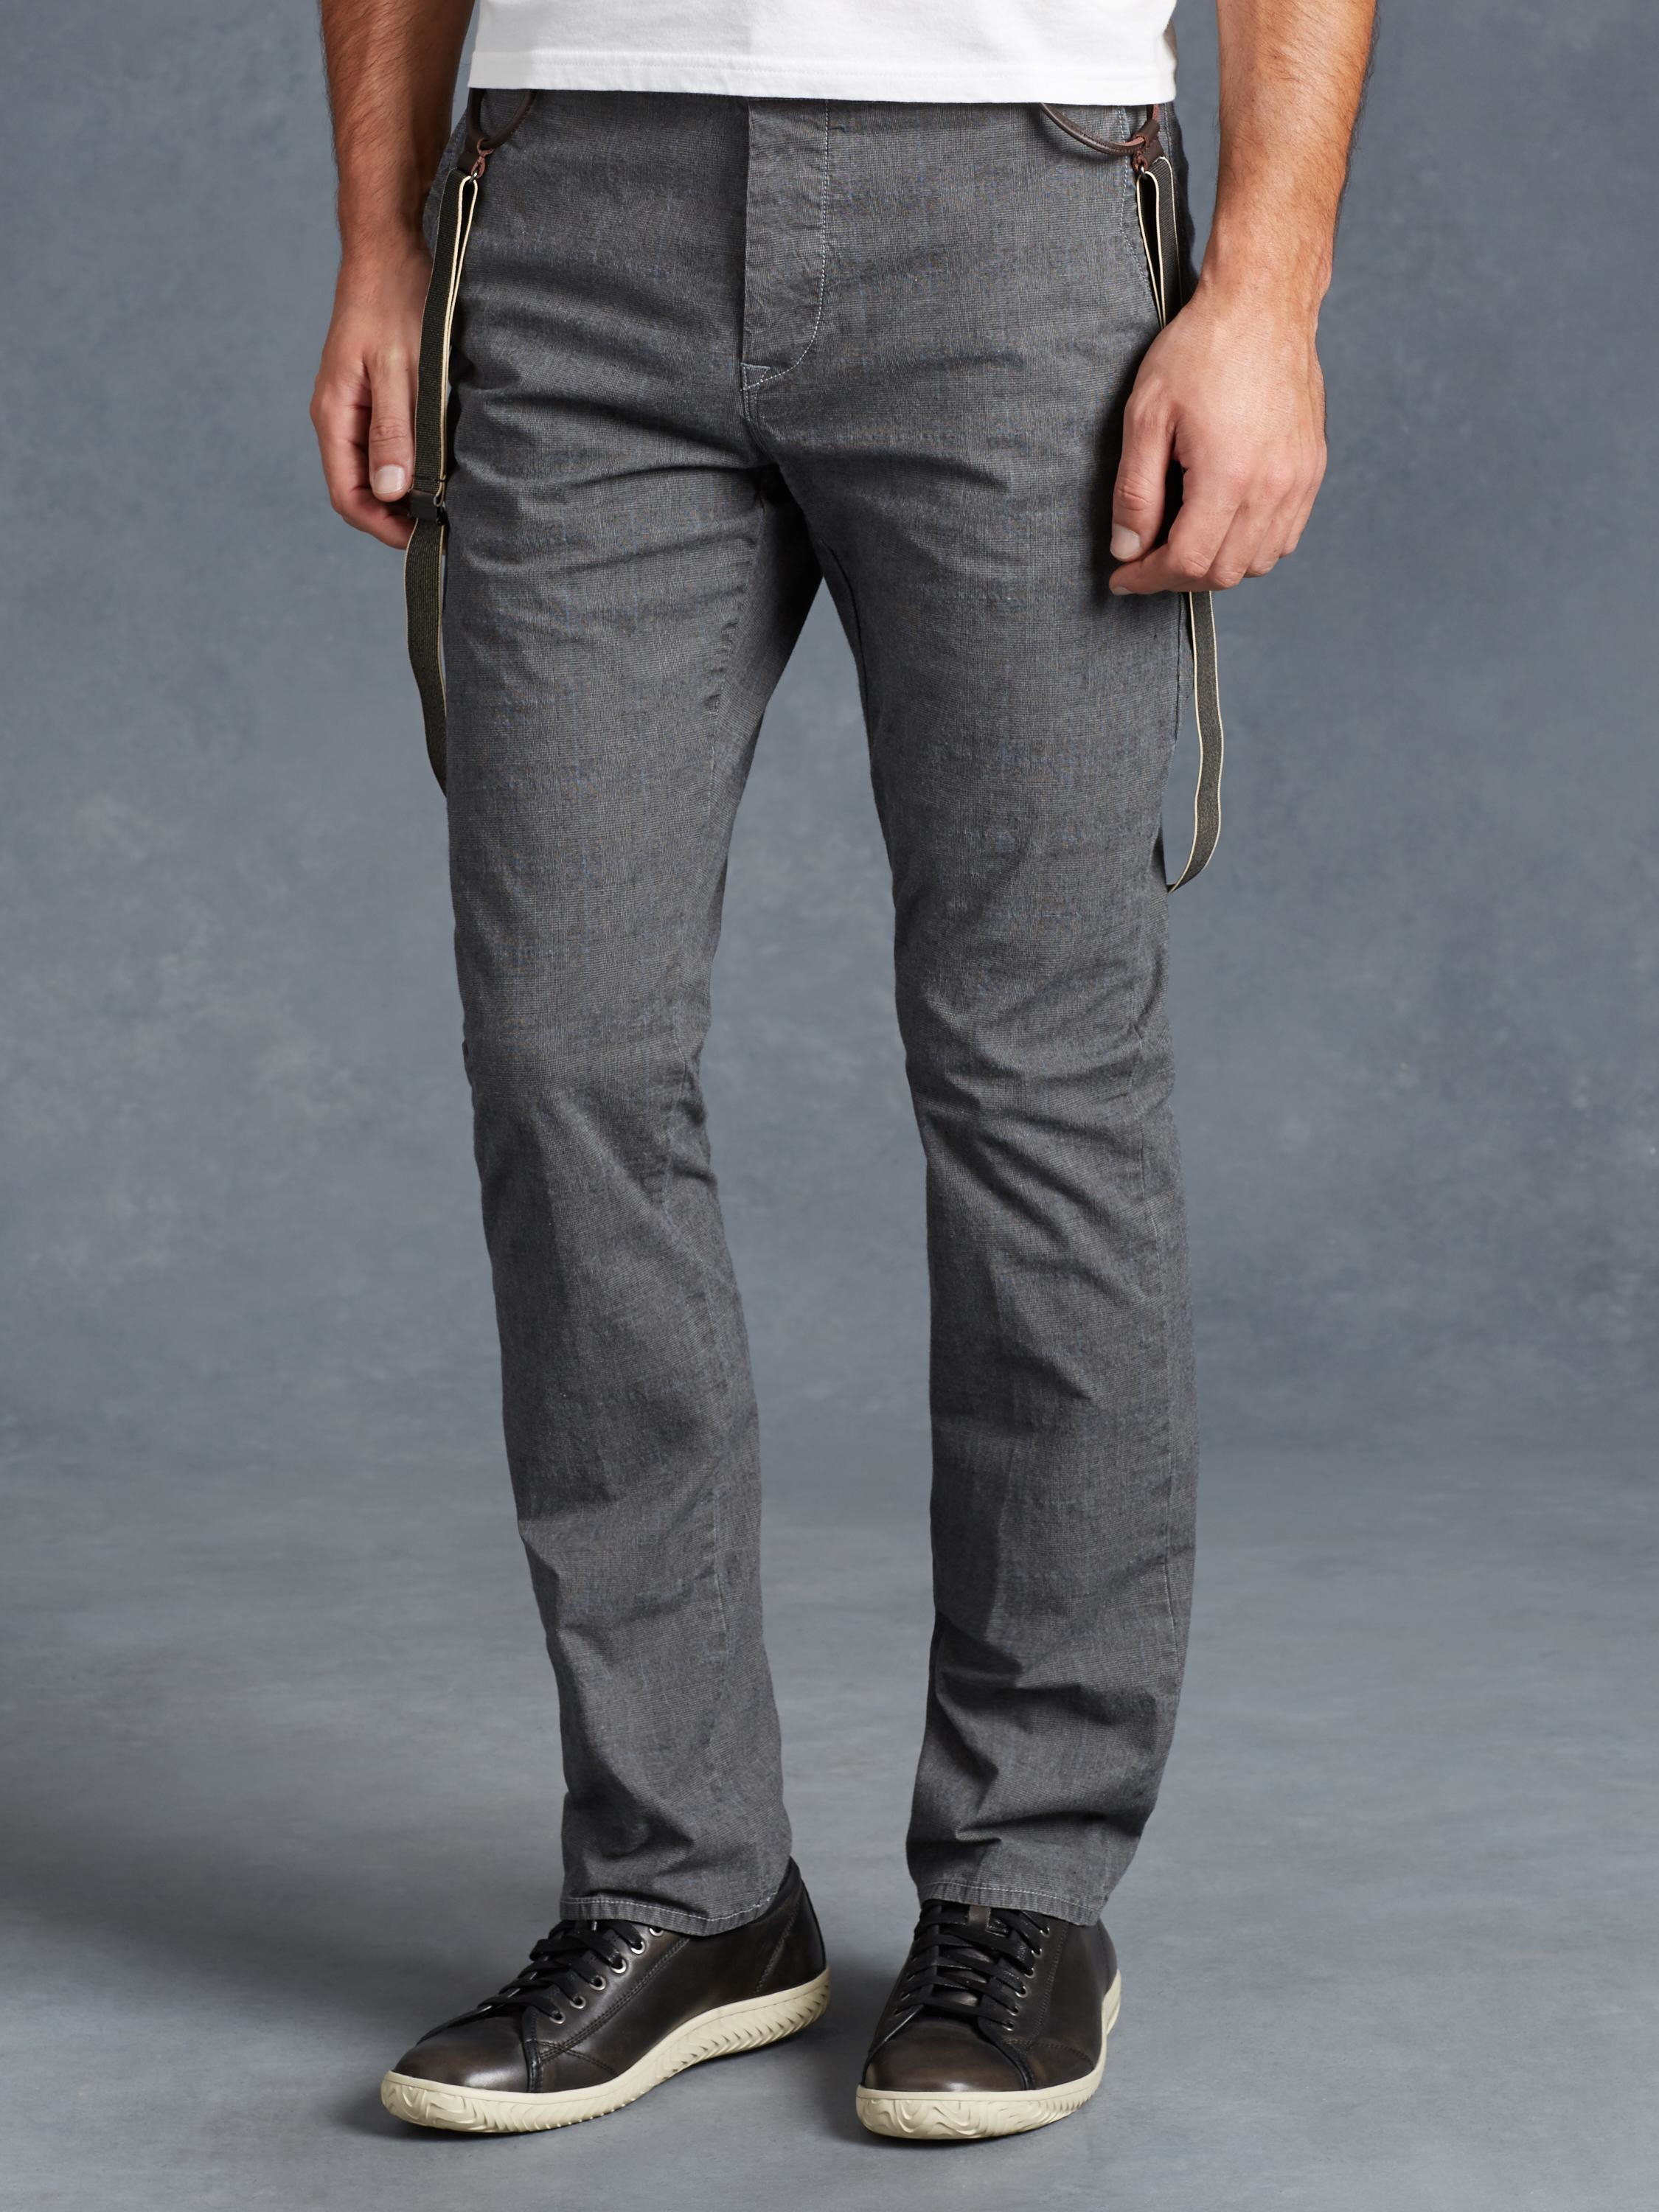 Shop for and buy mens suspender pants online at Macy's. Find mens suspender pants at Macy's.